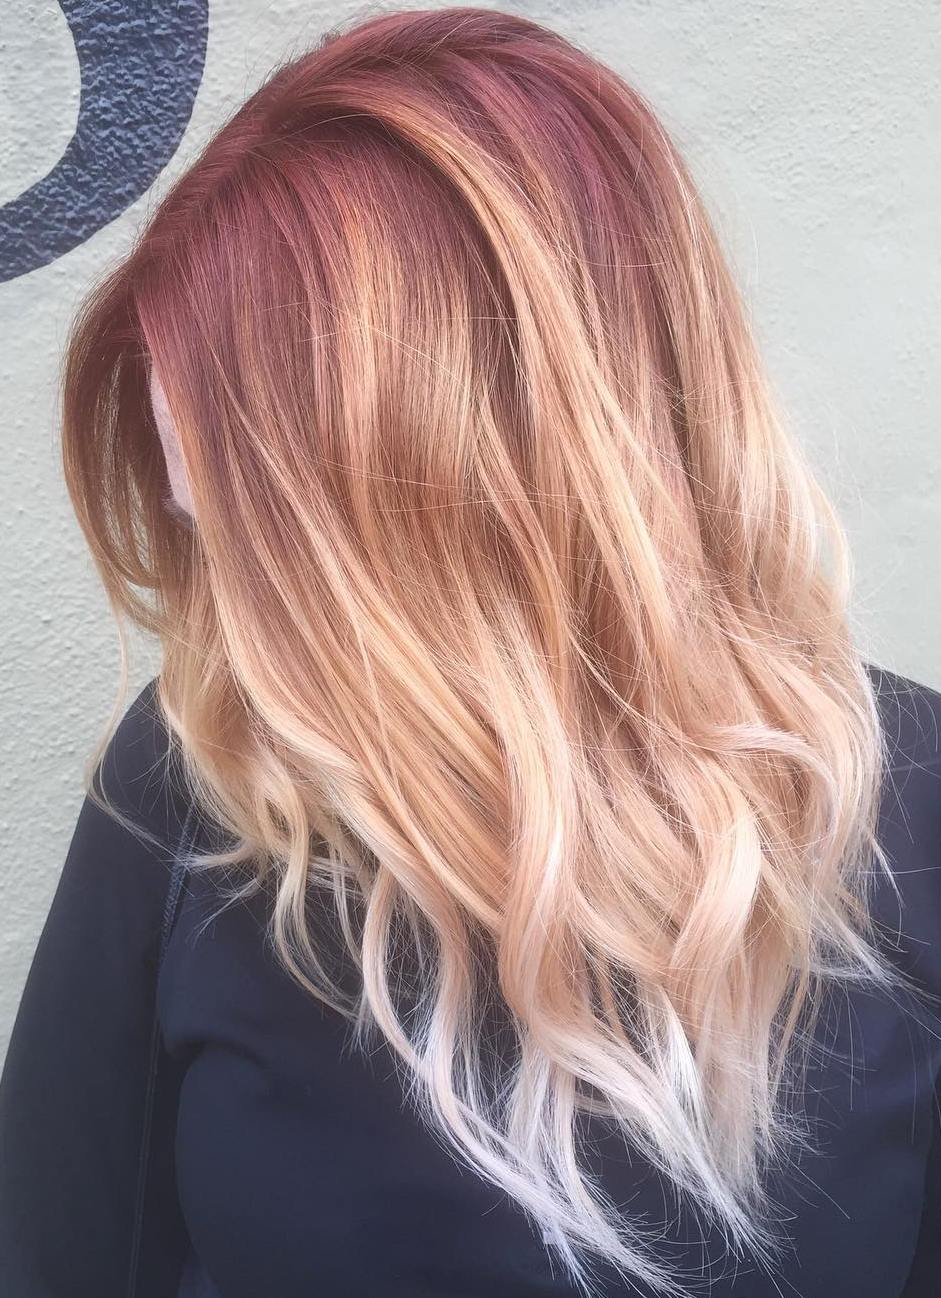 60 best ombre hair color ideas for blond brown red and black hair pink to blonde ombre urmus